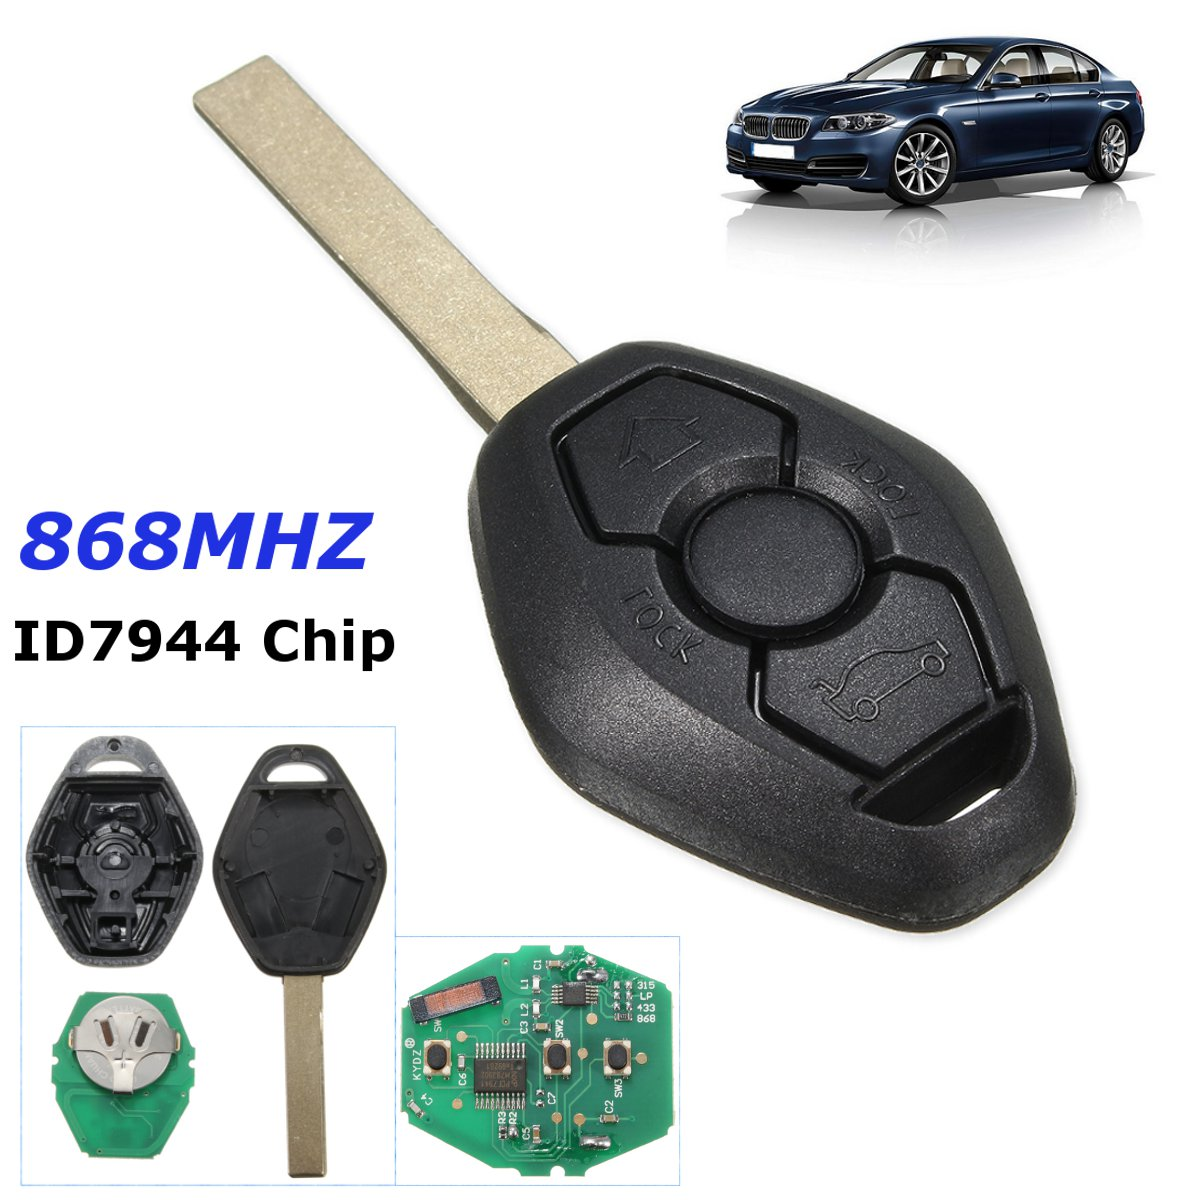 3 button uncut remote key fob 868mhz id7944 for cas2. Black Bedroom Furniture Sets. Home Design Ideas